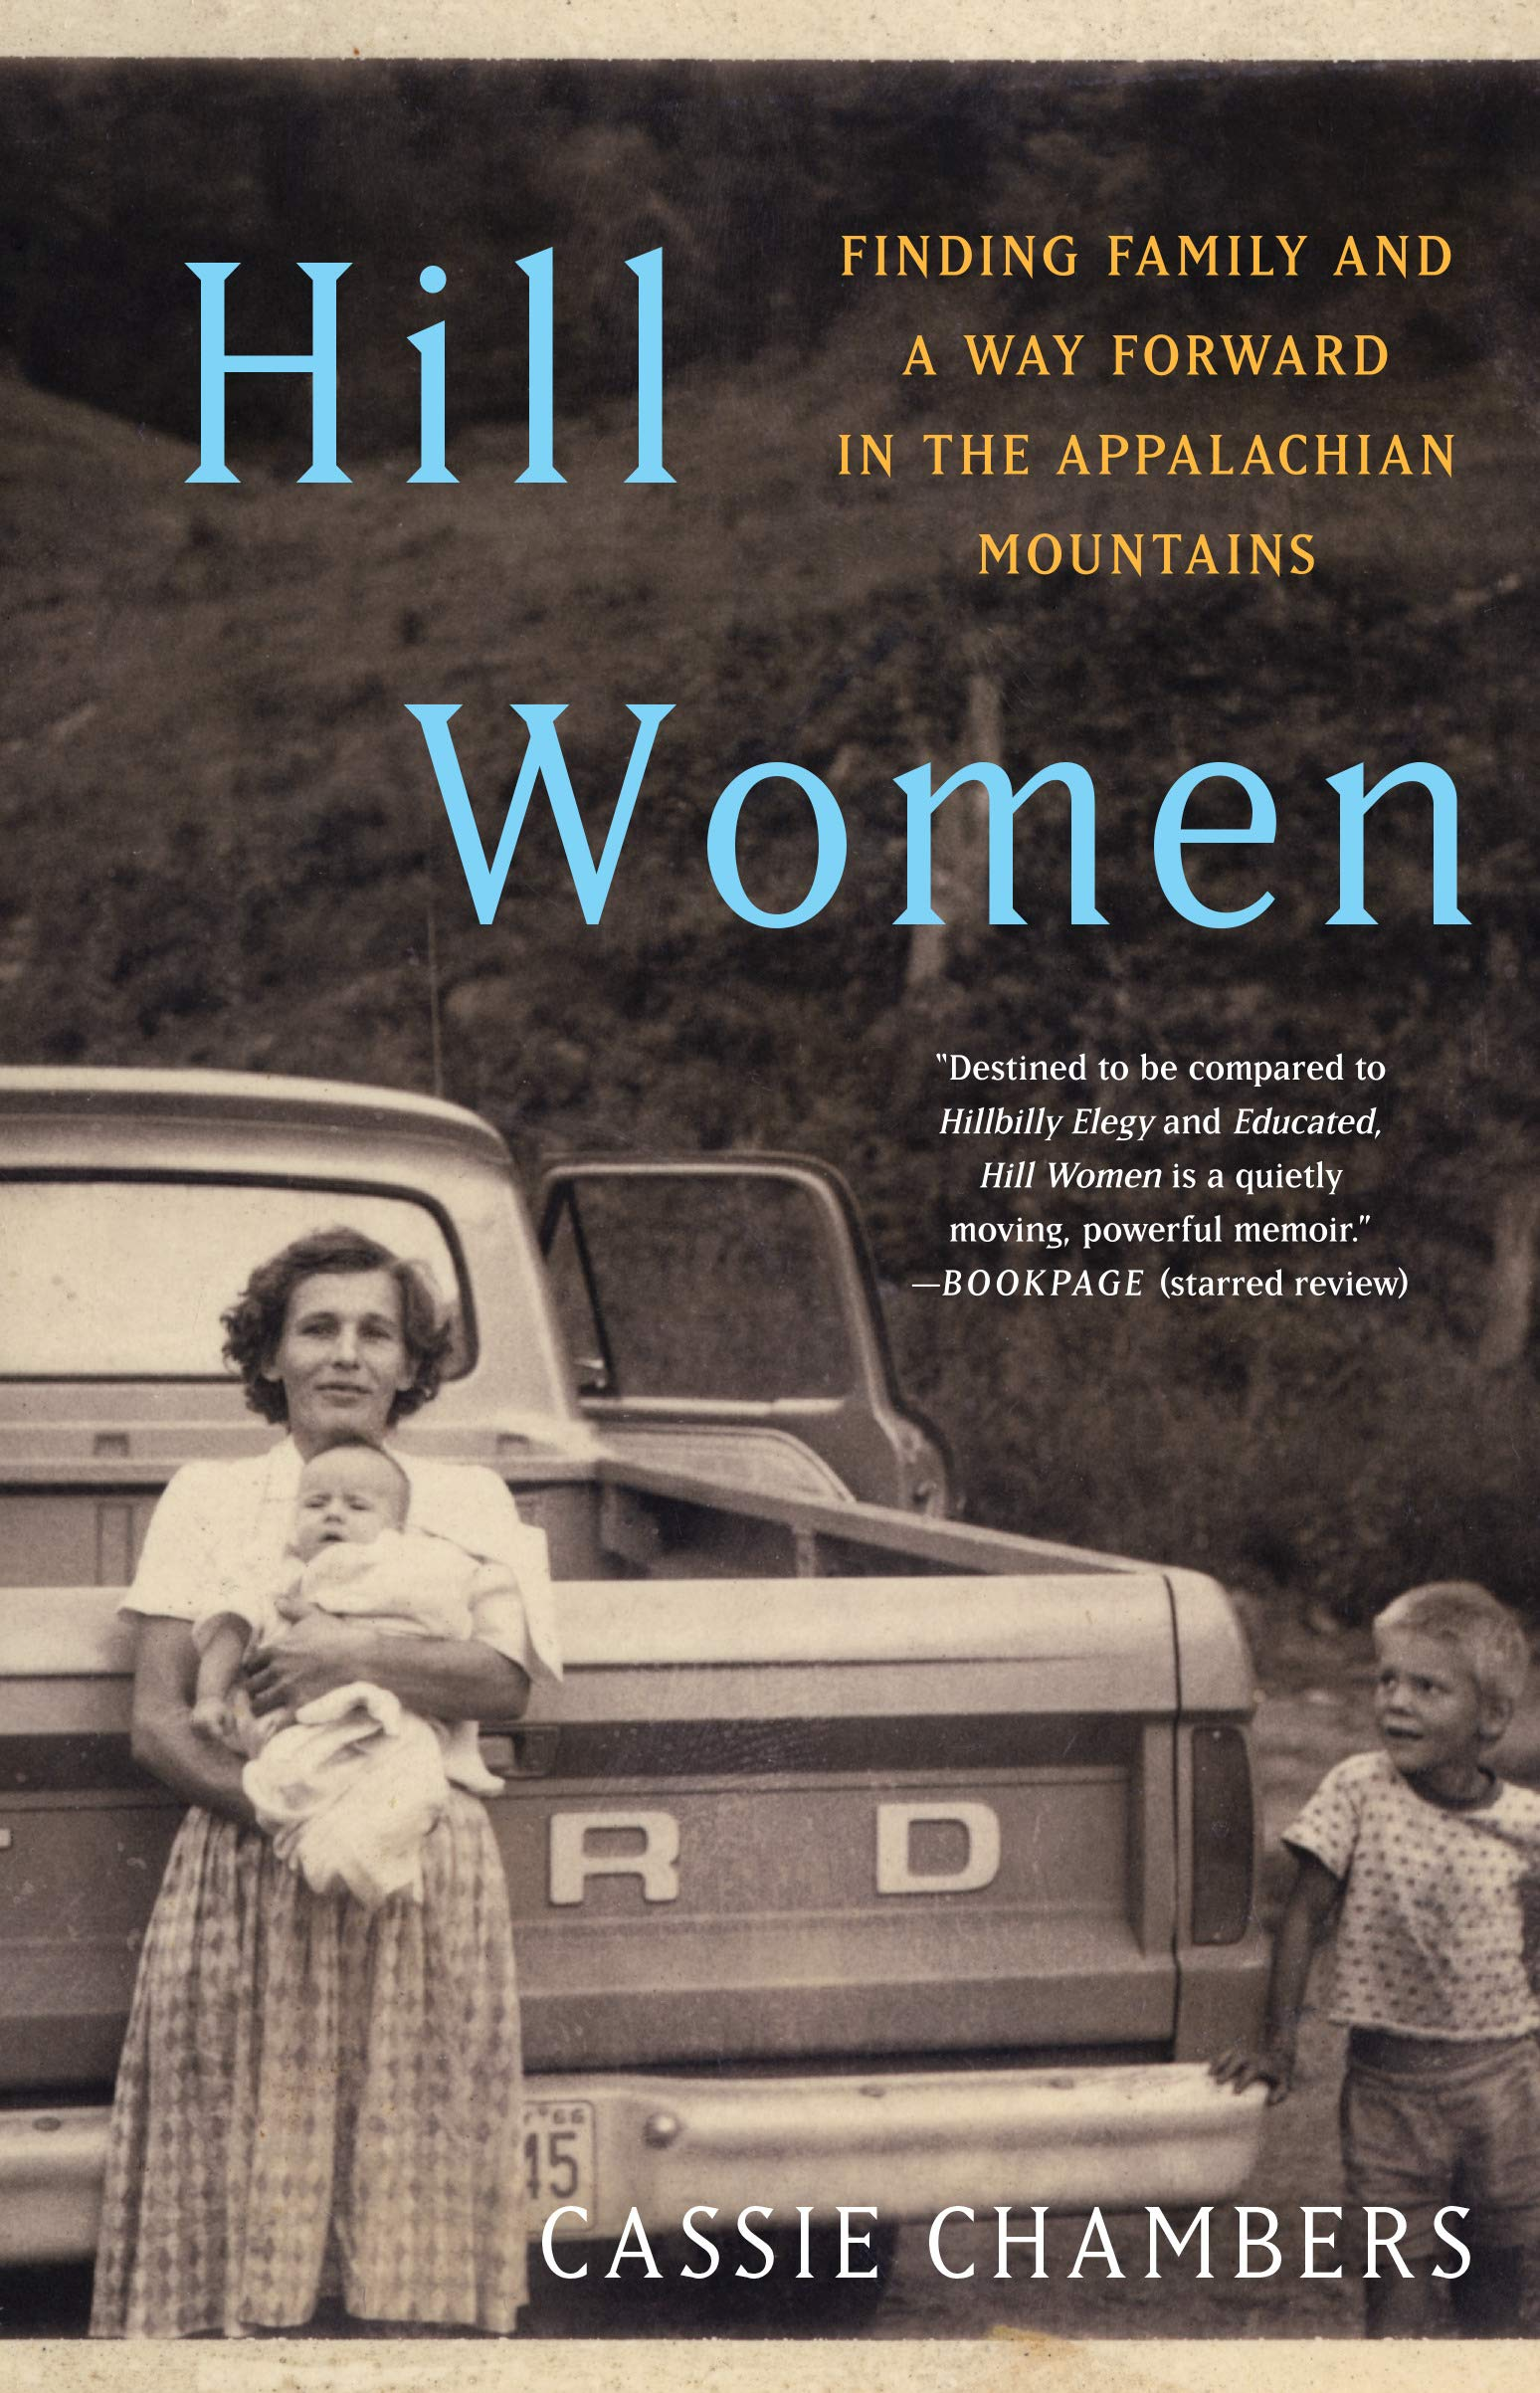 Amazon.com: Hill Women: Finding Family and a Way Forward in the Appalachian  Mountains (9781984818935): Chambers, Cassie: Books